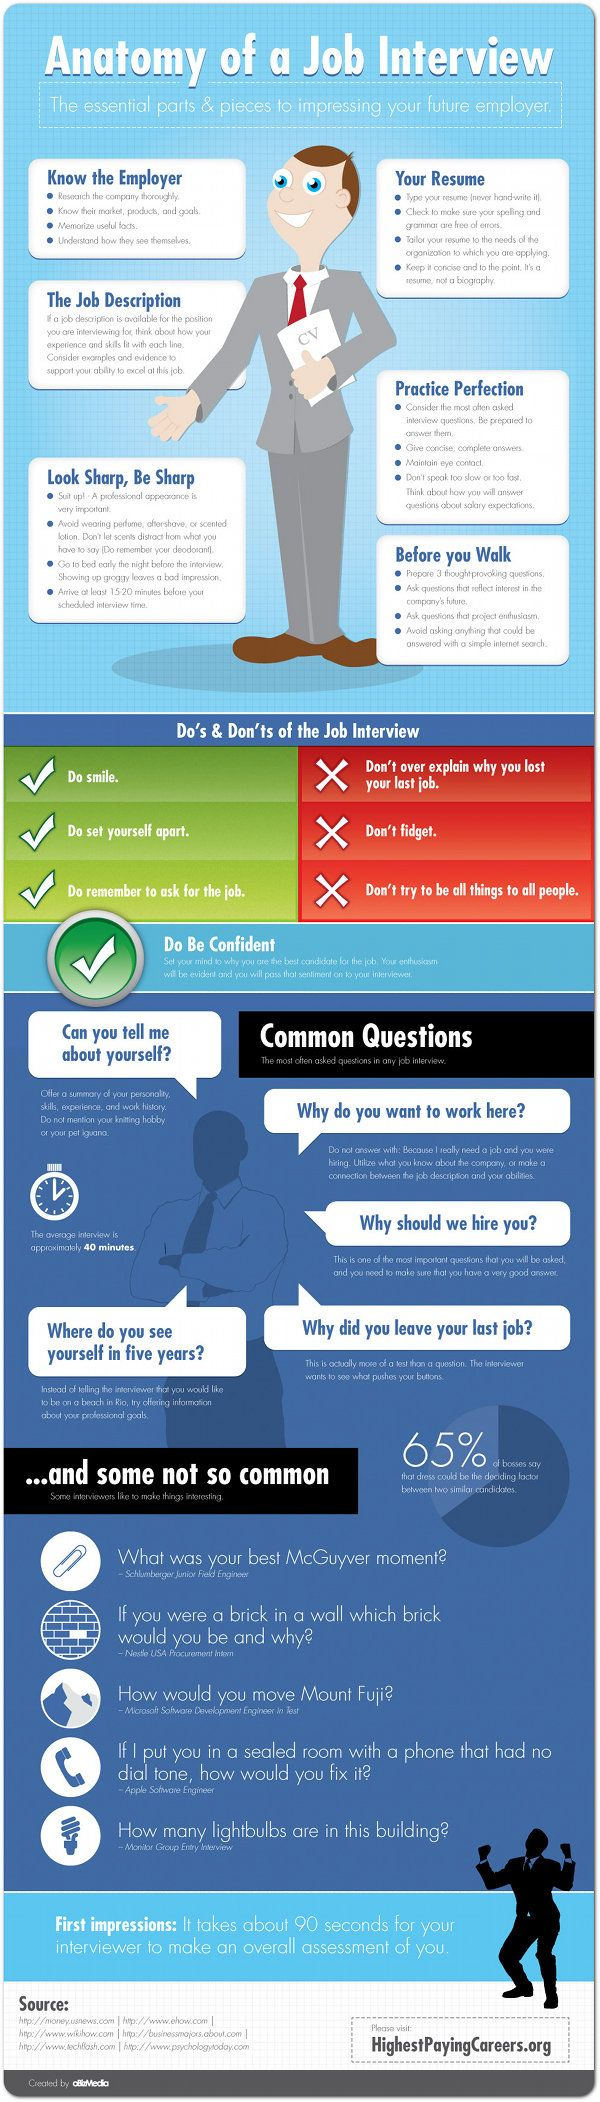 17 best images about interviewing tips for 5 uncommon questions asked during job interviews